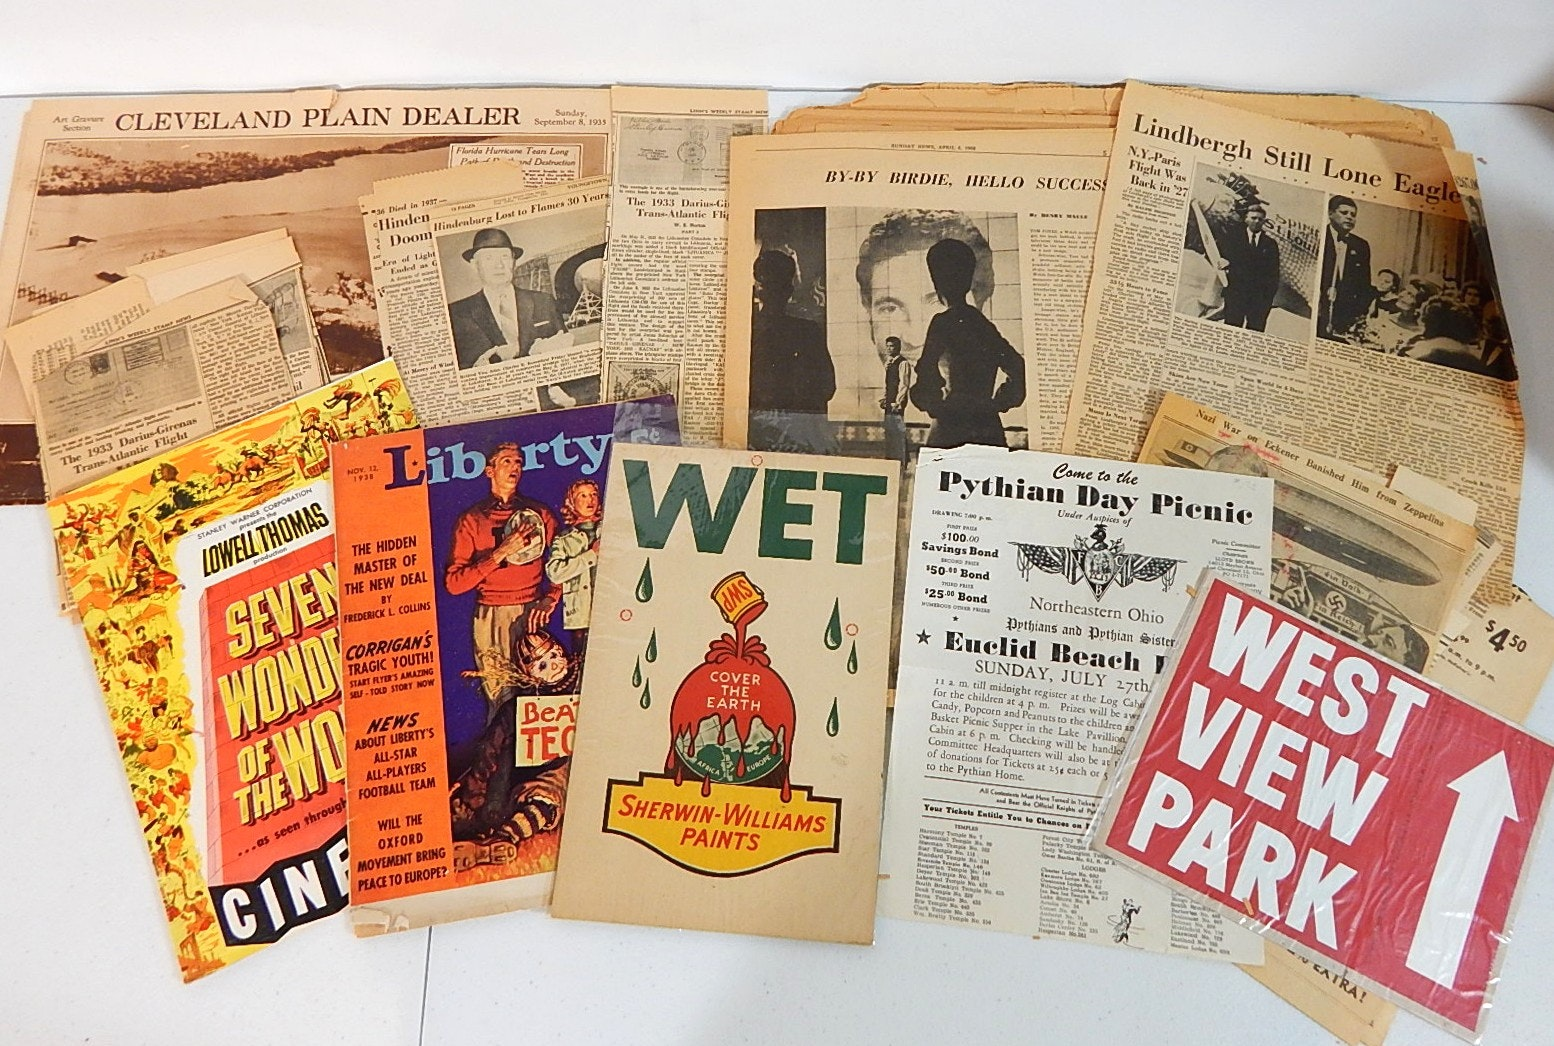 Vintage Ephemera and Advertising Memorabilia